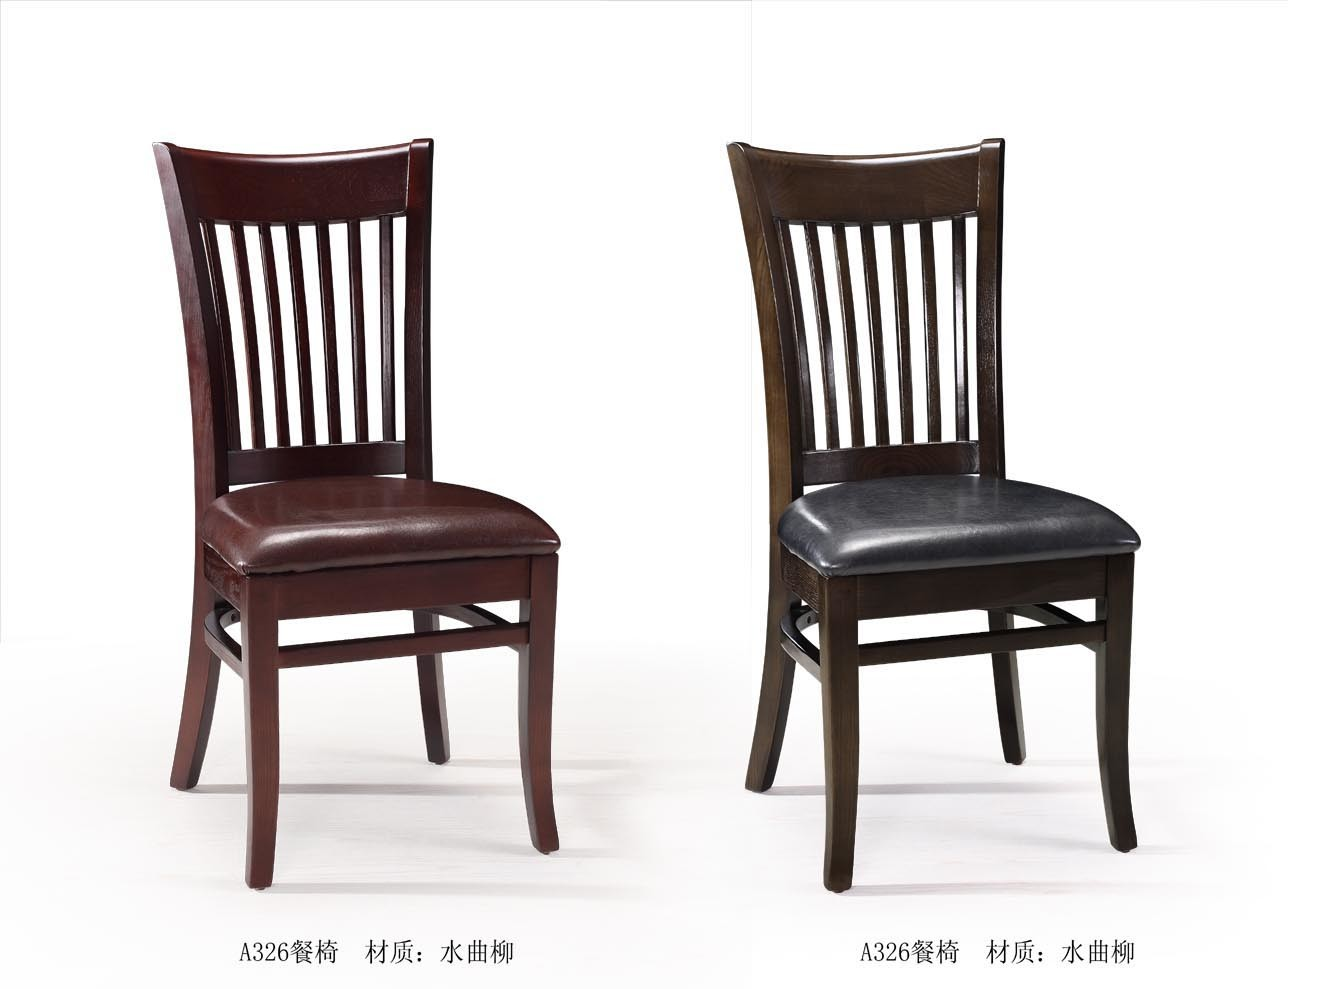 Wood Dining Chair China Wooden Dining Chair 326 China Dining Chair Wood